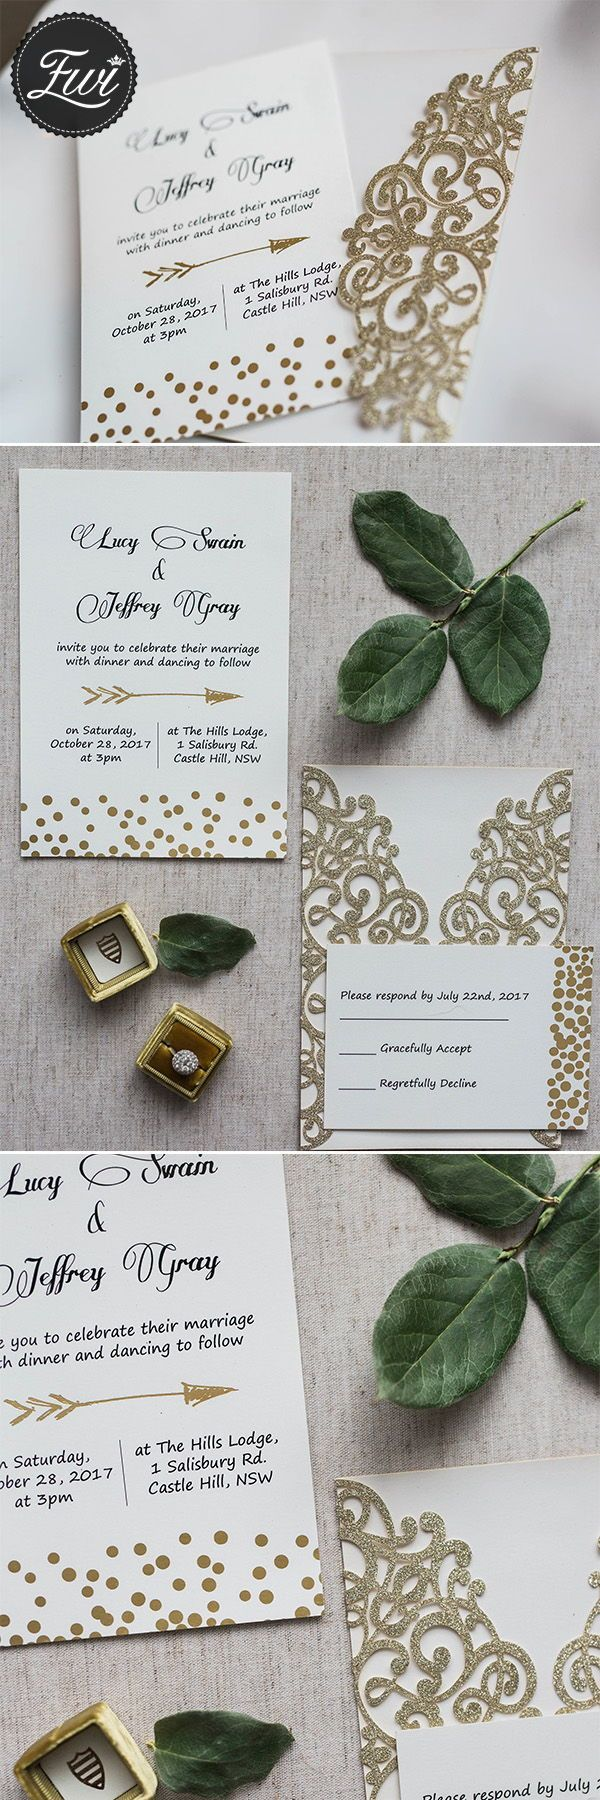 Luxury Gold Cupid's Arrow Polka Dots Laser Cut Wedding Invitation Kits EWWS210 #glitterweddinginvitations #lasercutweddinginvitations